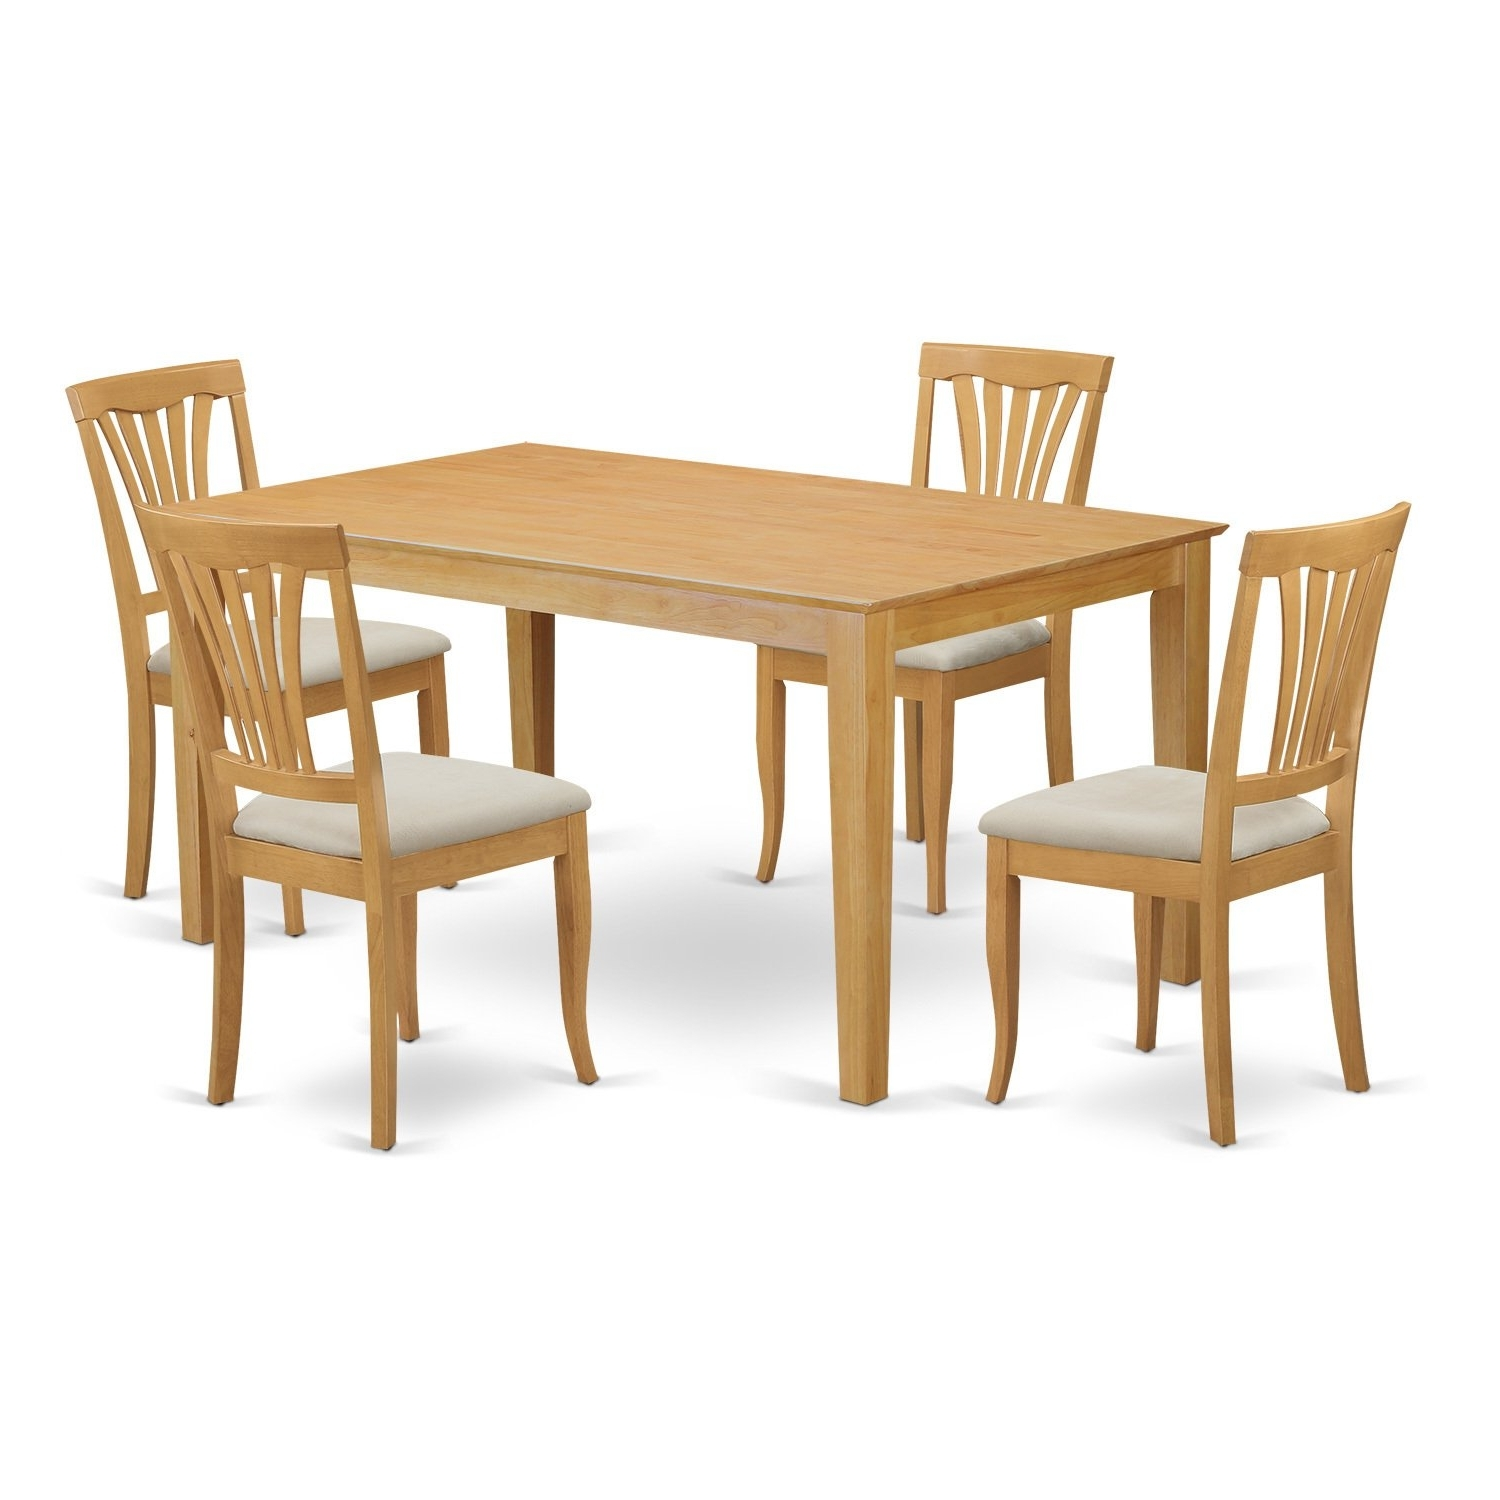 Ebay With Regard To Oak Dining Tables And 4 Chairs (View 5 of 25)